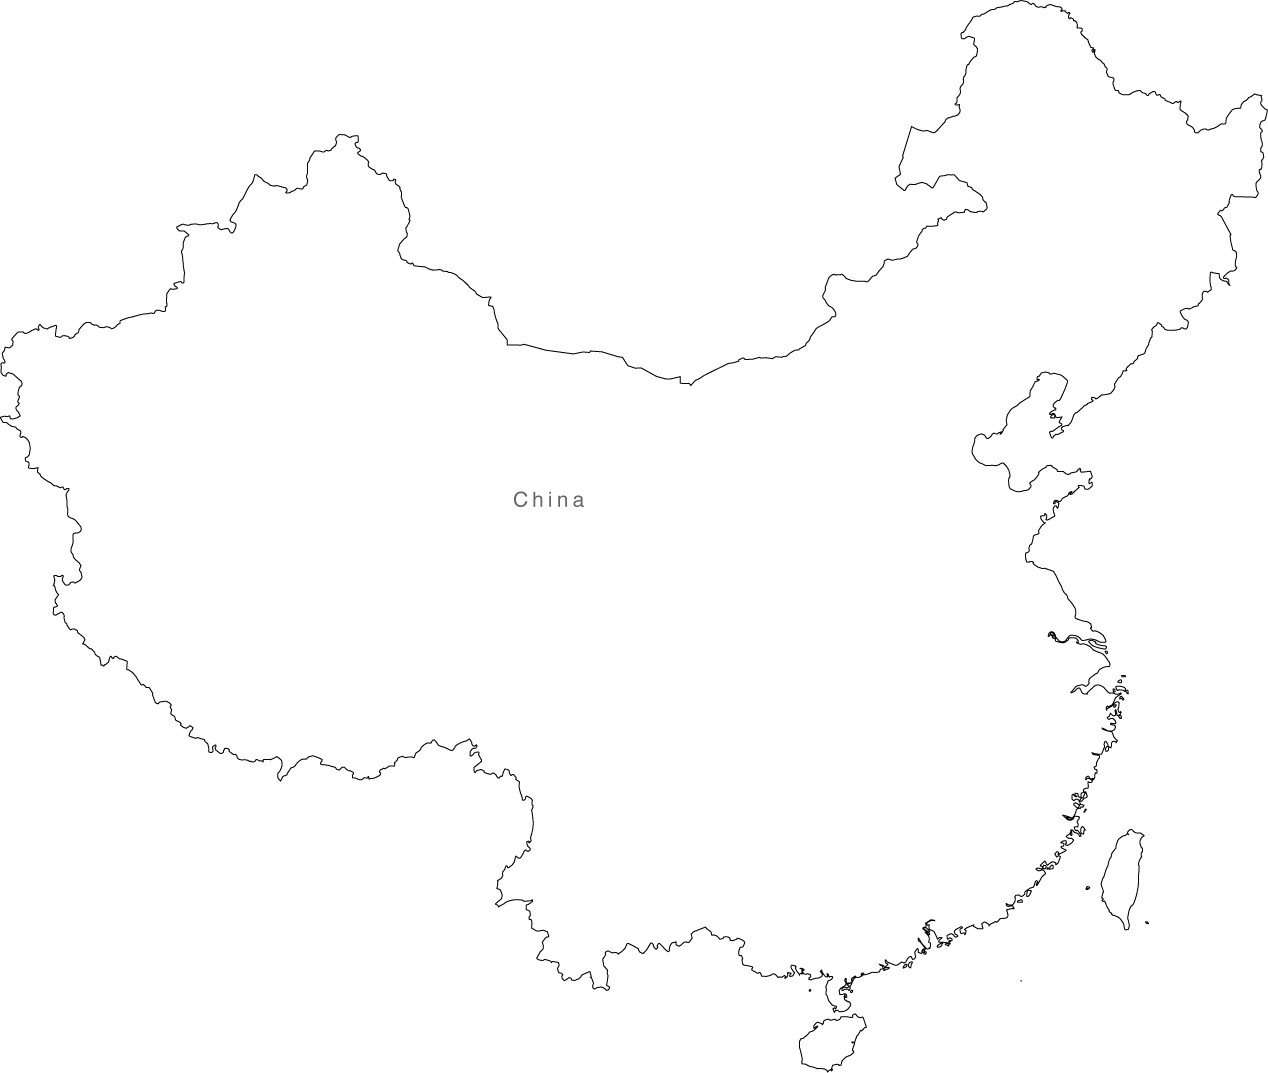 Digital China Map for Adobe Illustrator and PowerPoint/KeyNote